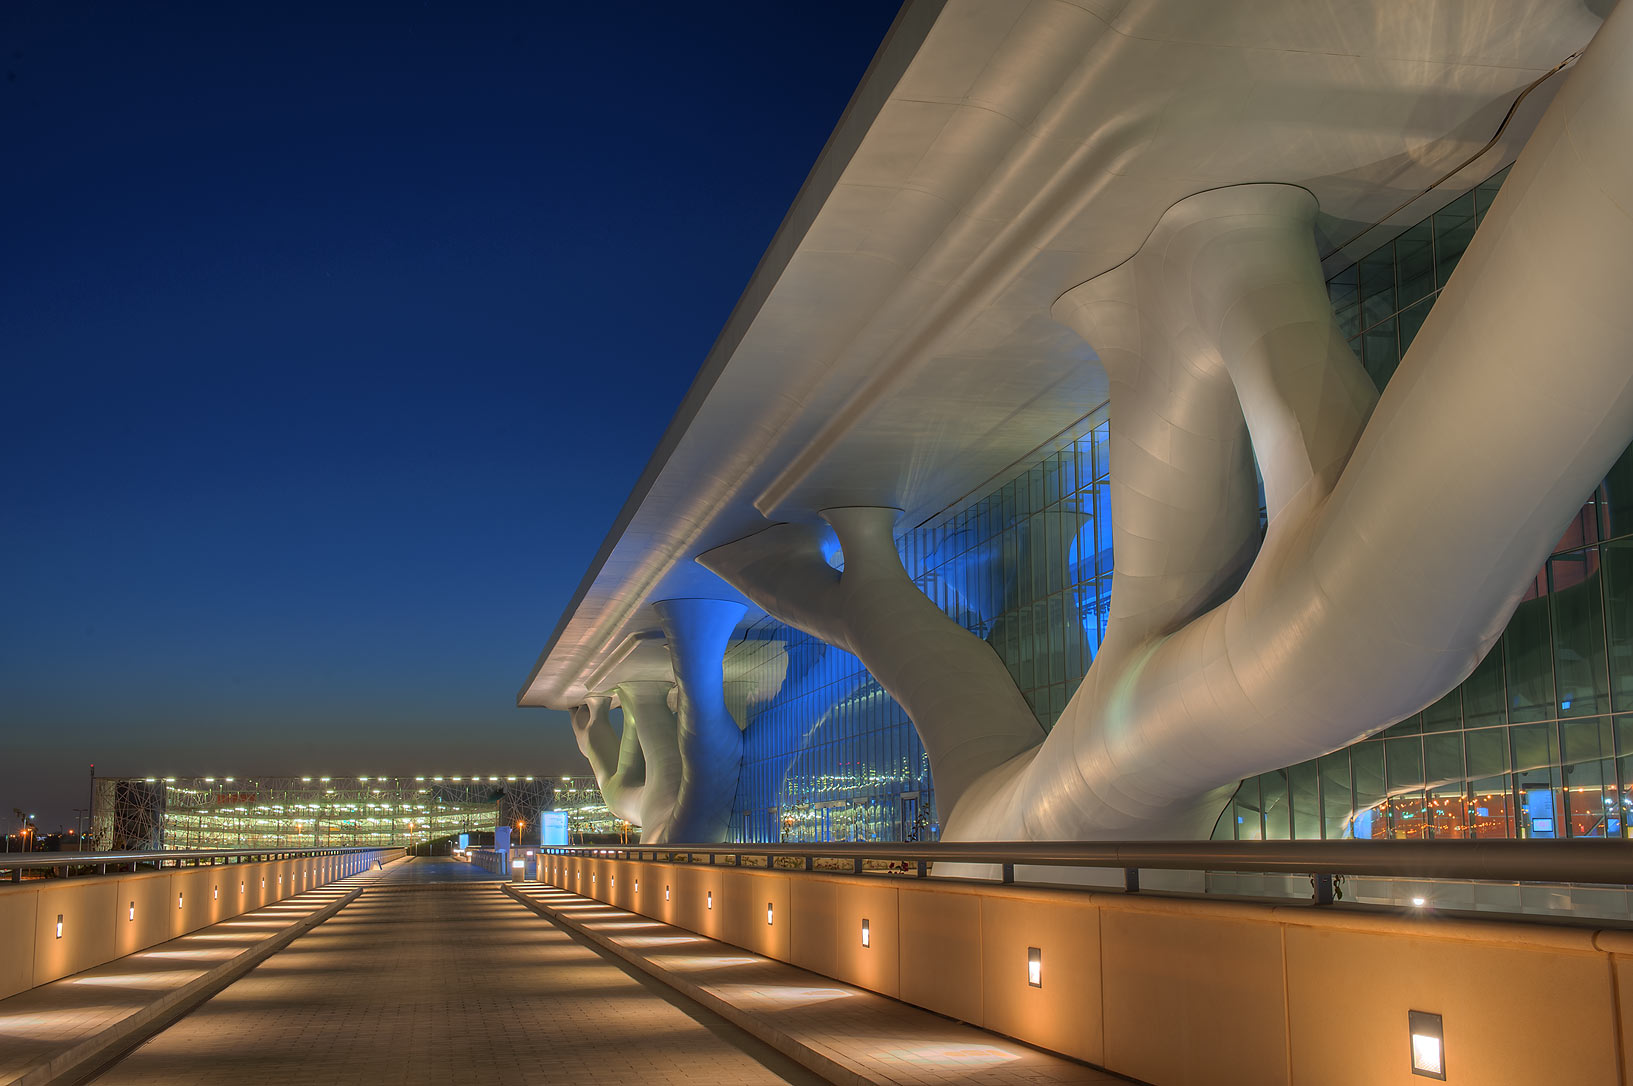 Entrance of National Convention Centre (QNCC...the roof at evening. Doha, Qatar